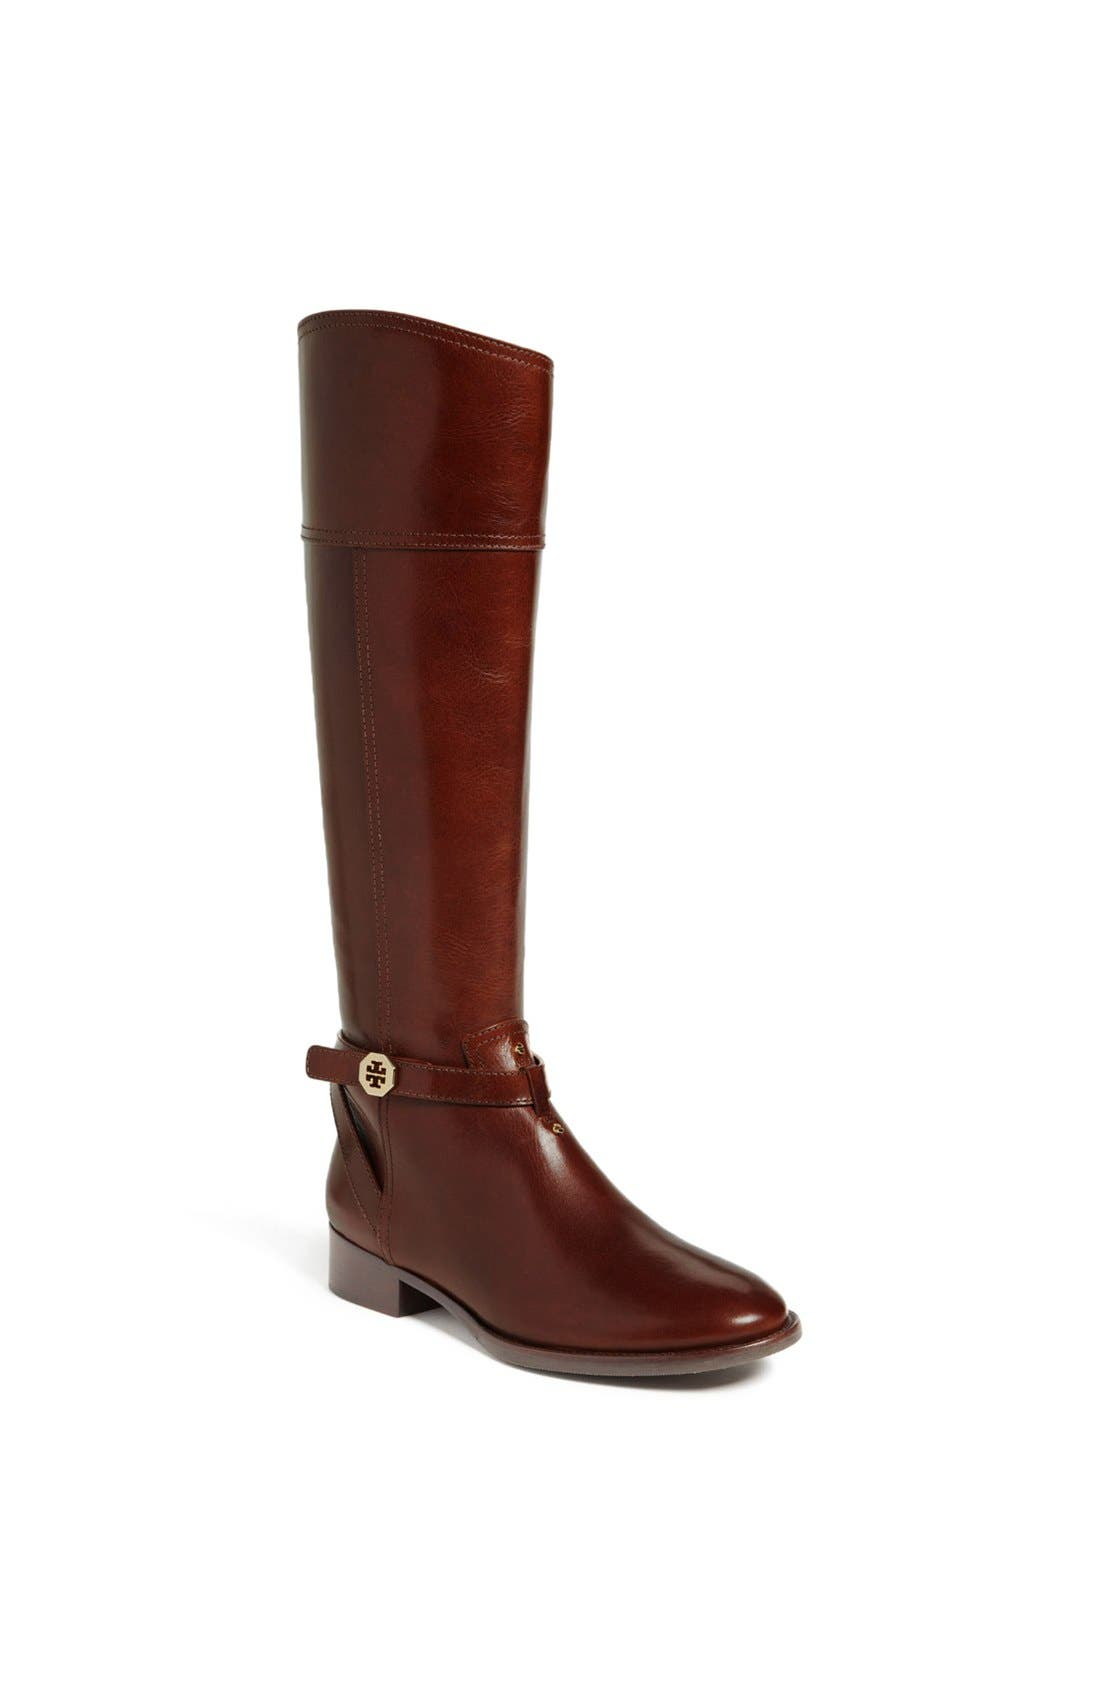 Main Image - Tory Burch 'Brita' Riding Boot